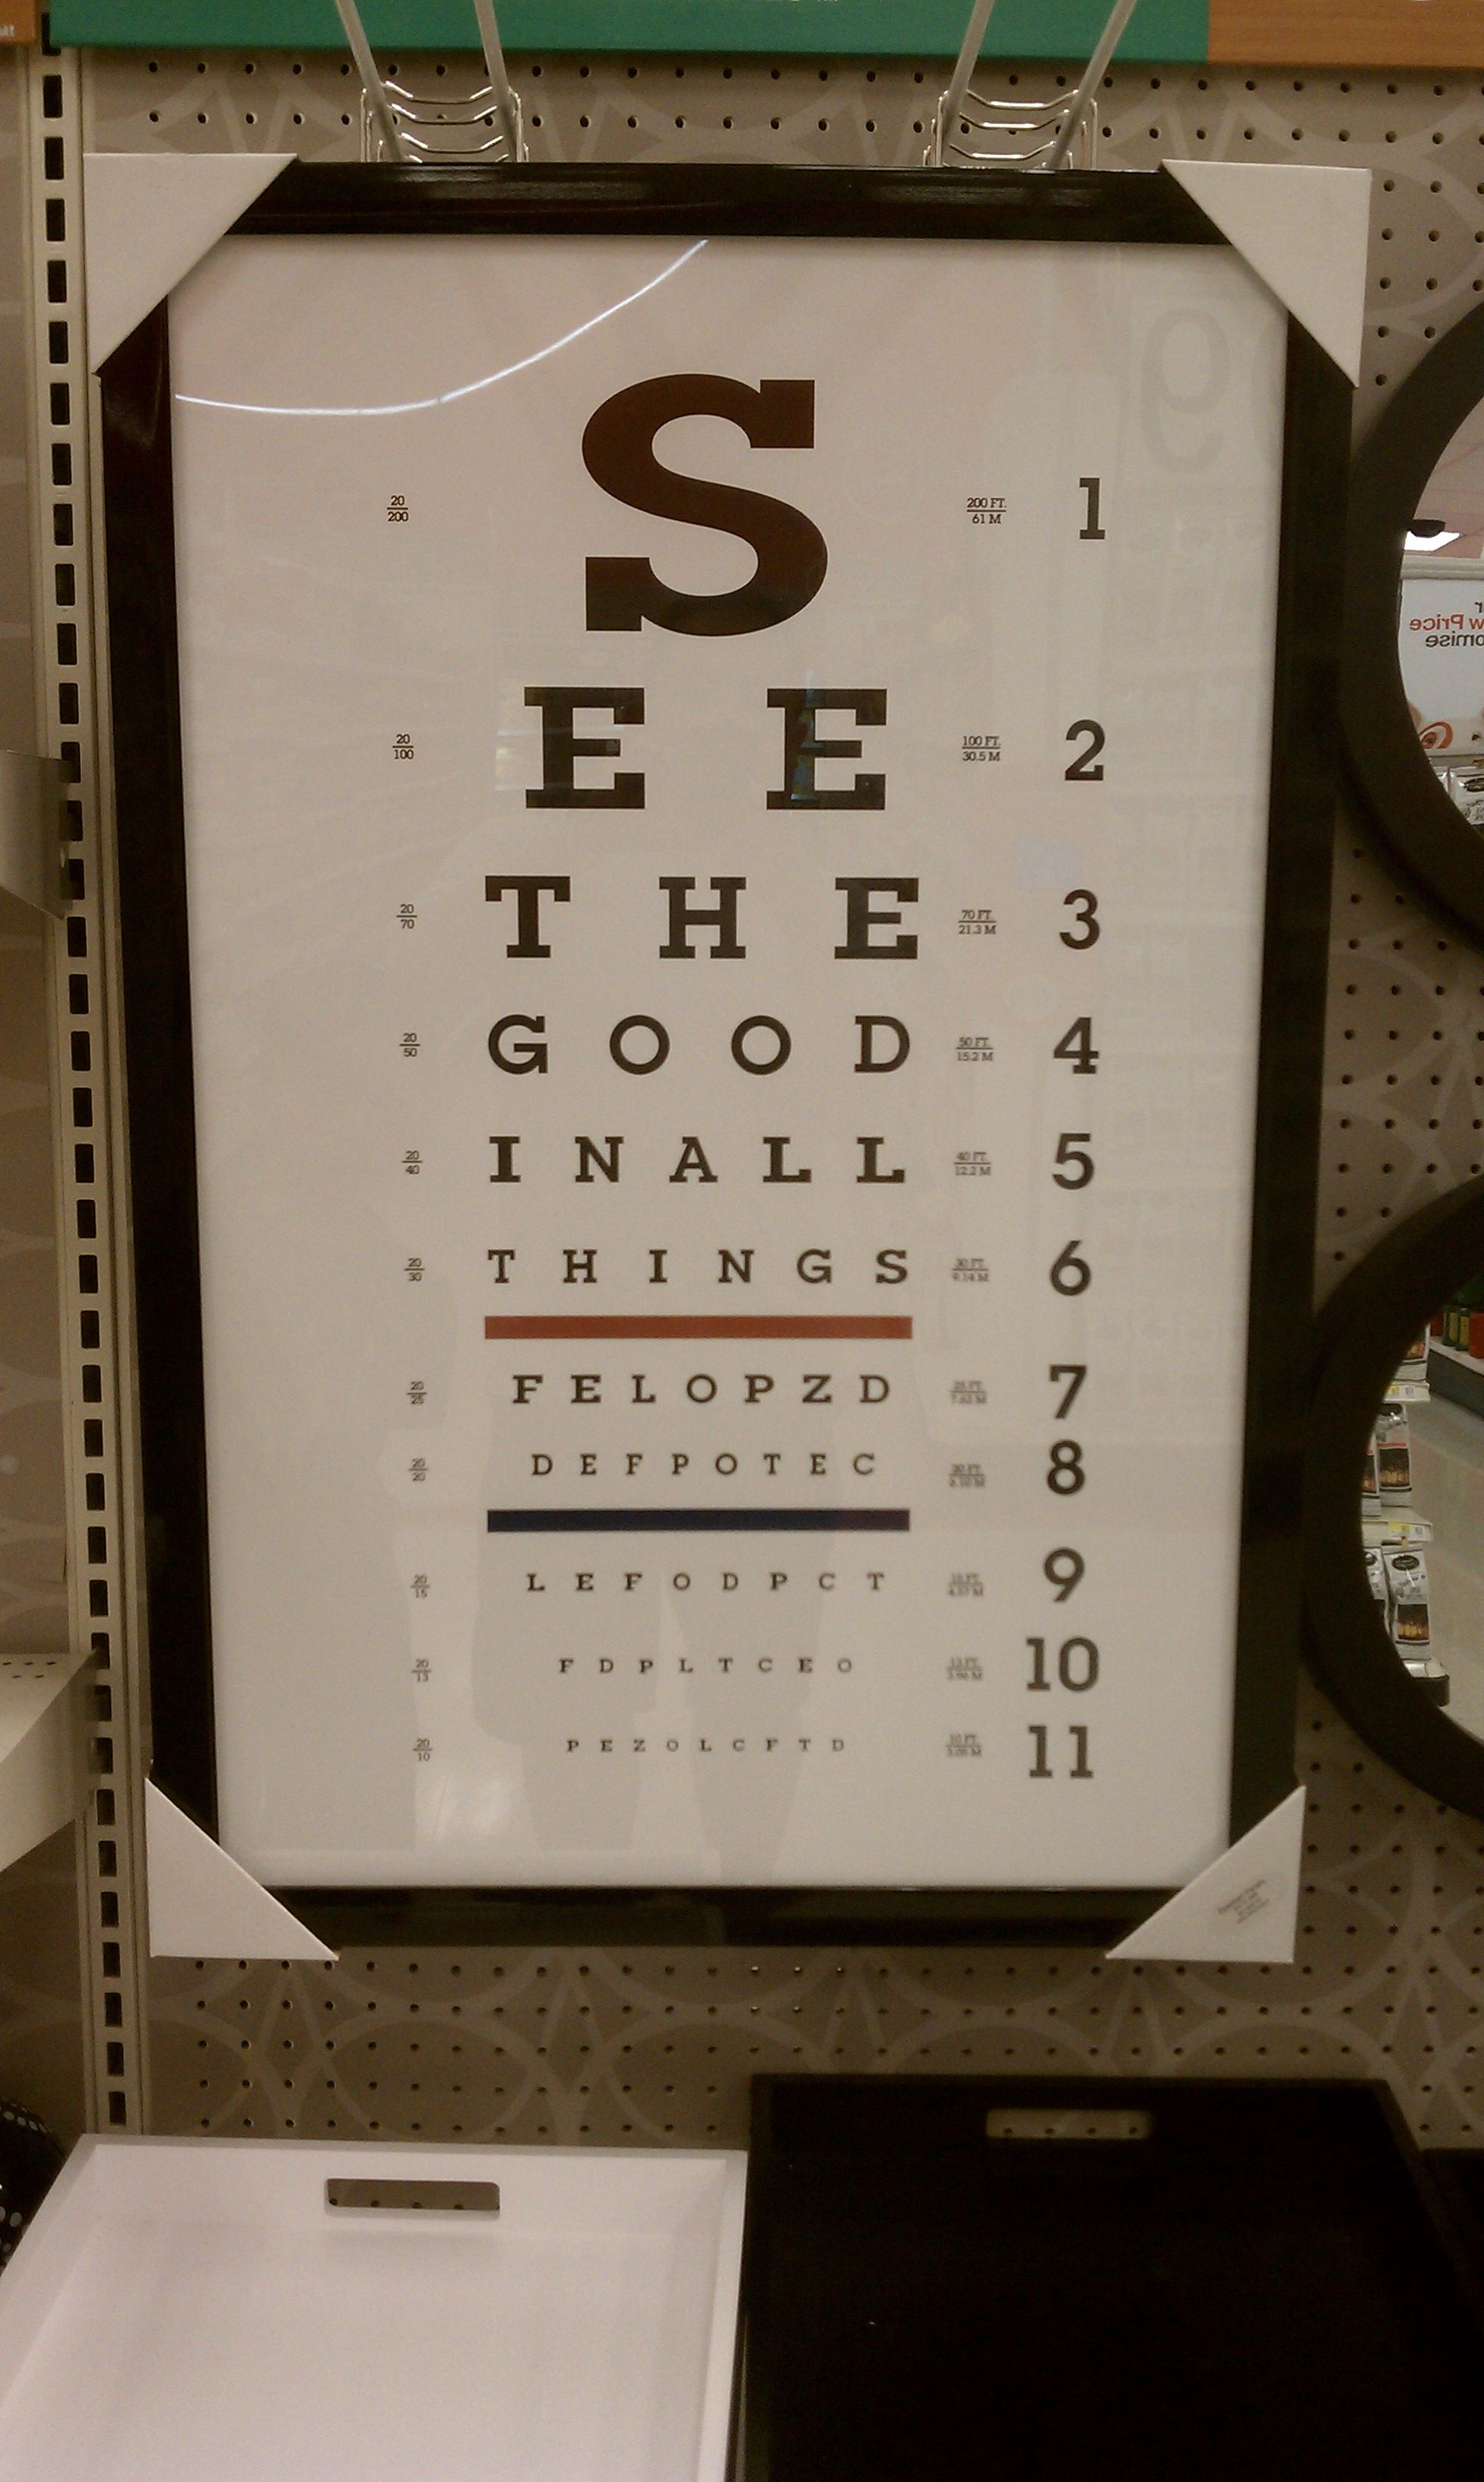 See The Good In All Things